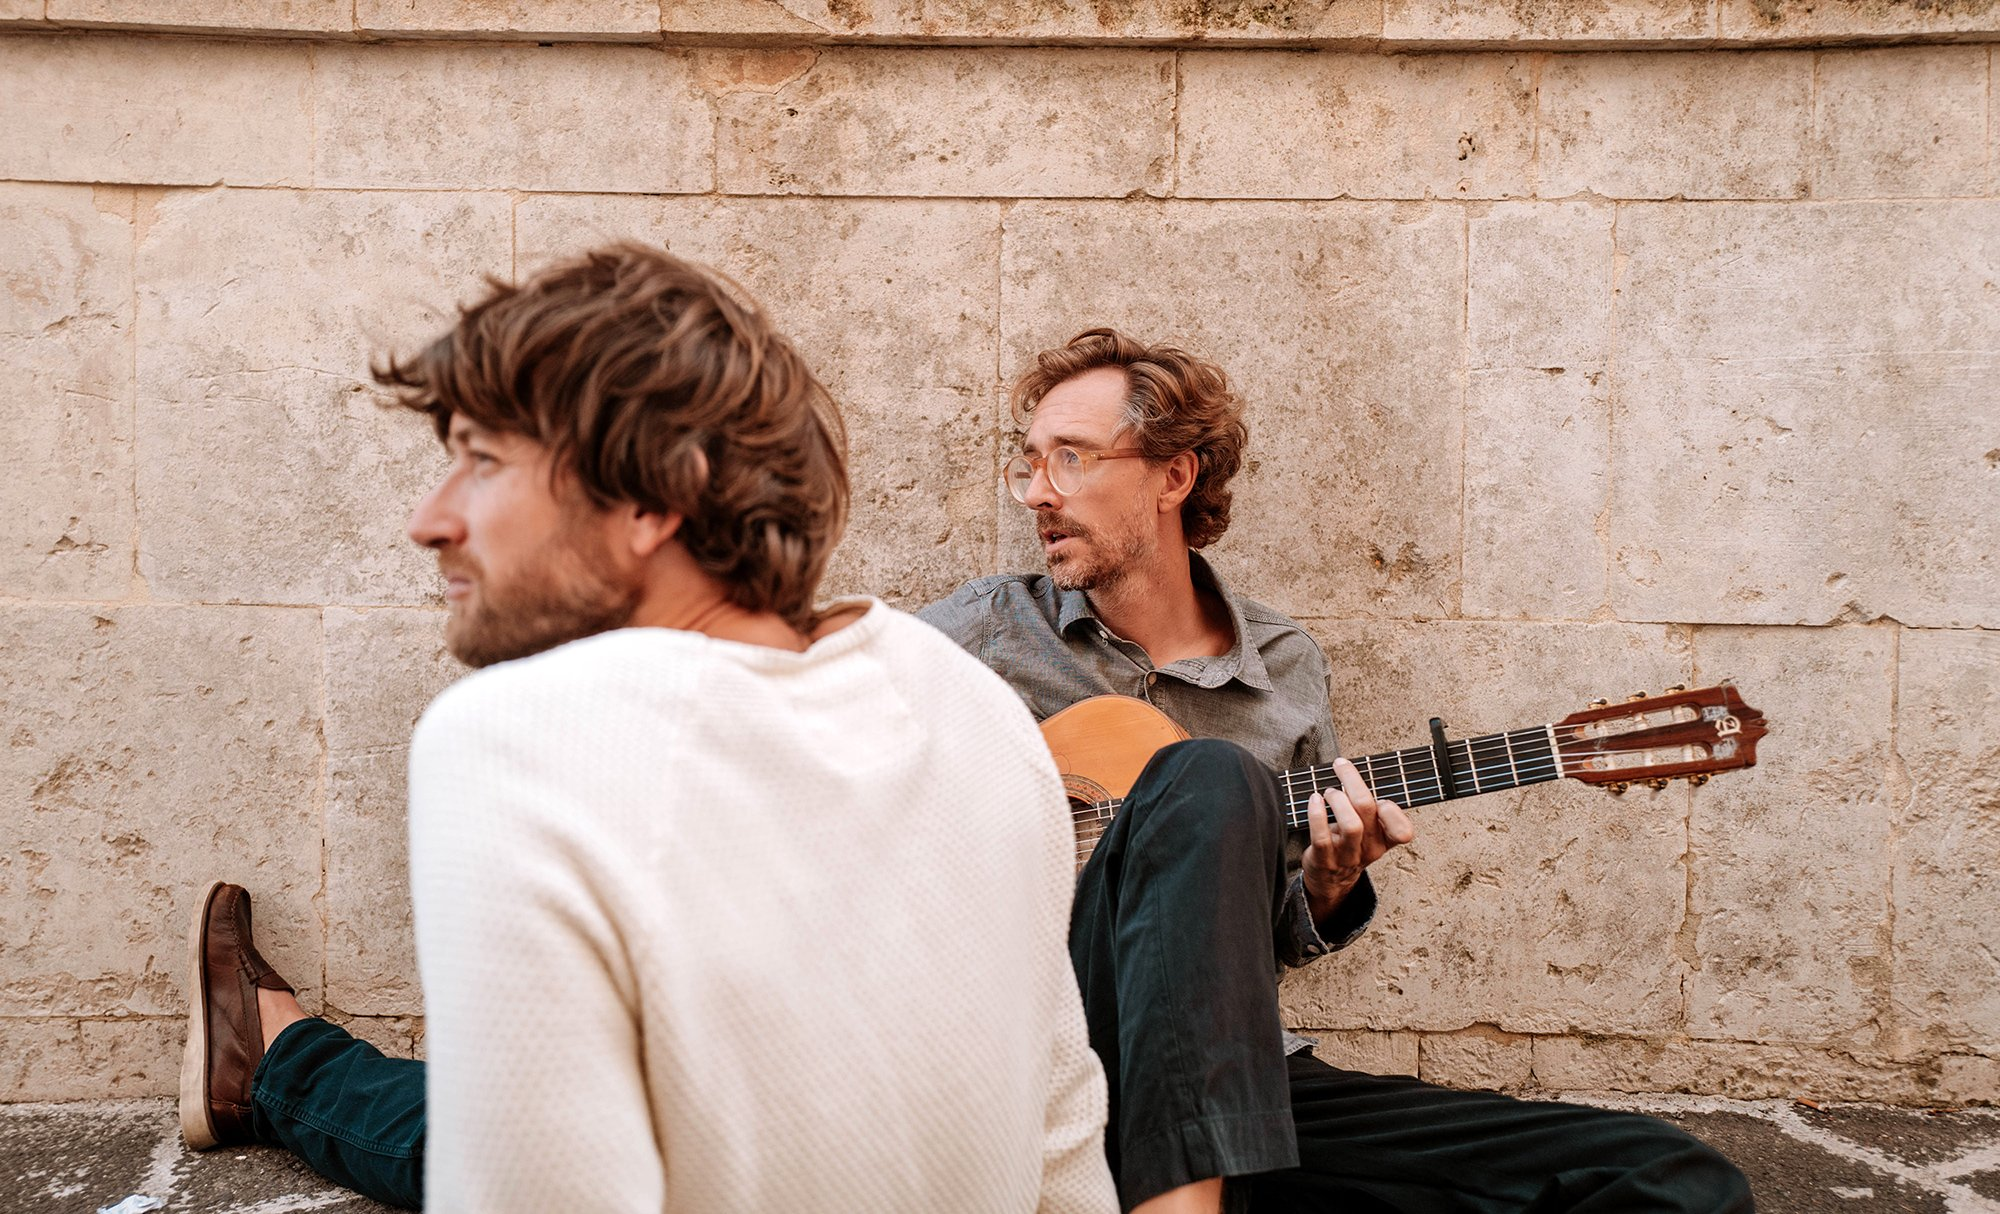 Kings of Convenience 'Peace or Love' Review: A Neat Depiction of the  Dichotomies of Love